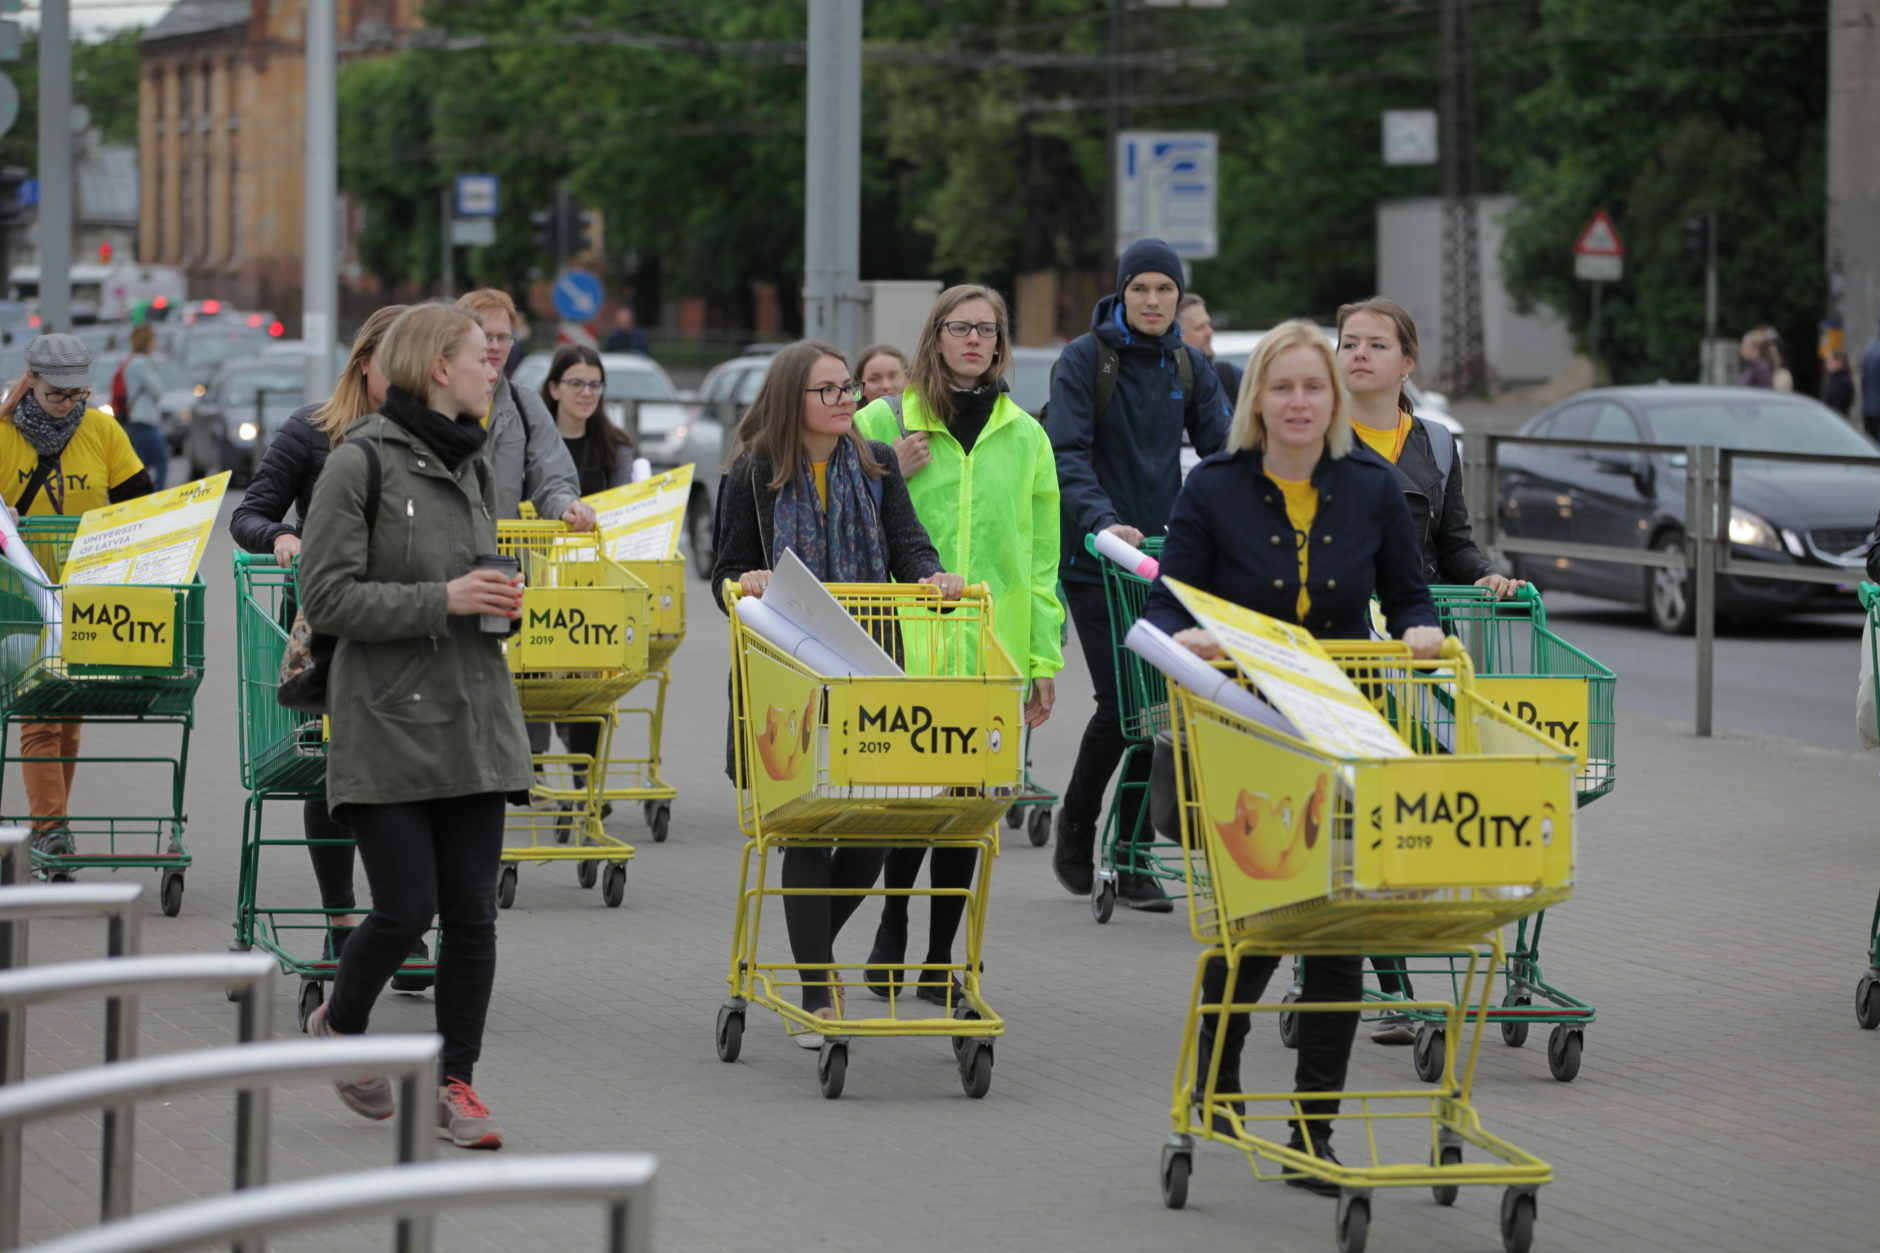 Participants in the hackathon at Mad City, May 2019, trundle shopping trolleys along a testing terrain to their designated hackathon workspace in the Riga Knowledge Mile, Mad City, 2019, Riga, Latvia.